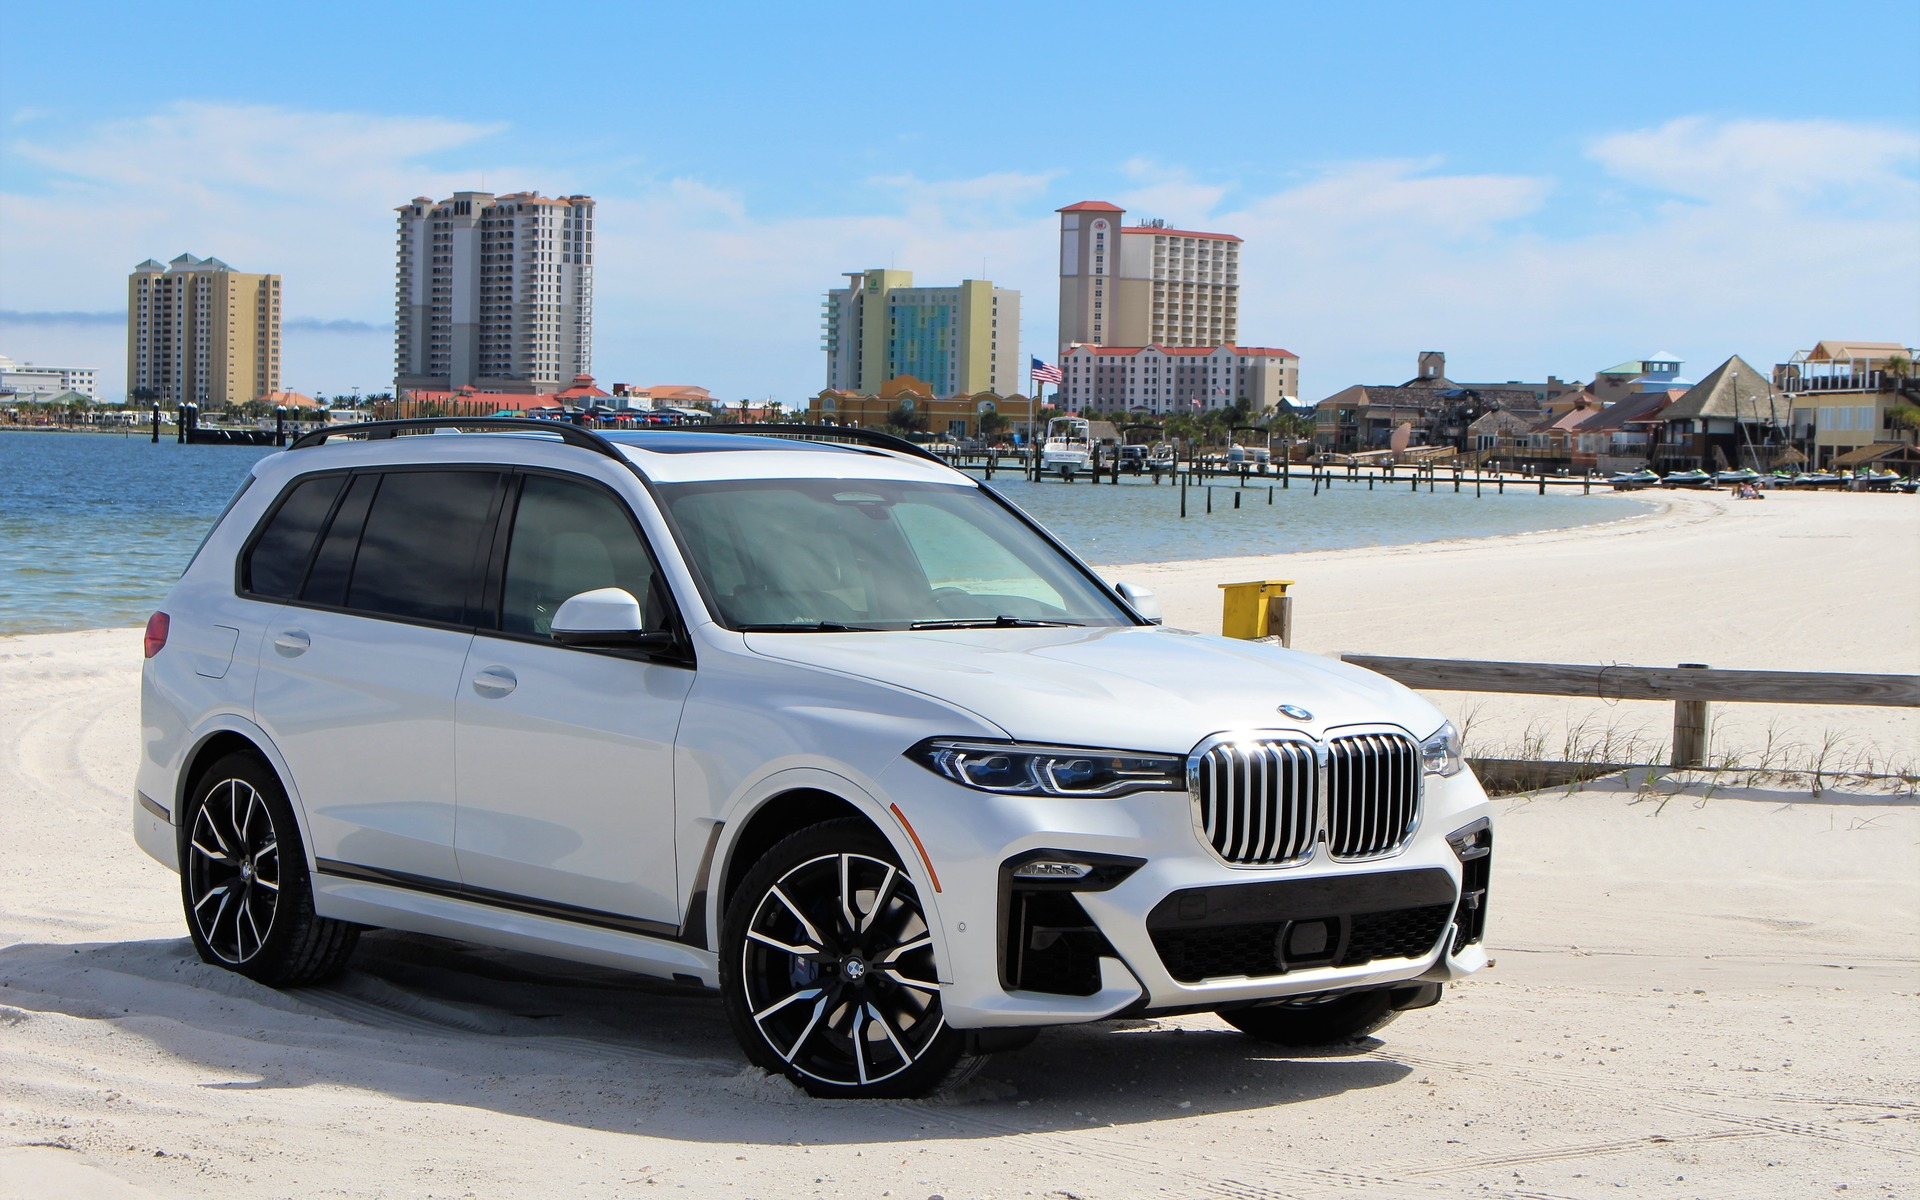 2019 BMW X7: Top of the Ladder - The Car Guide